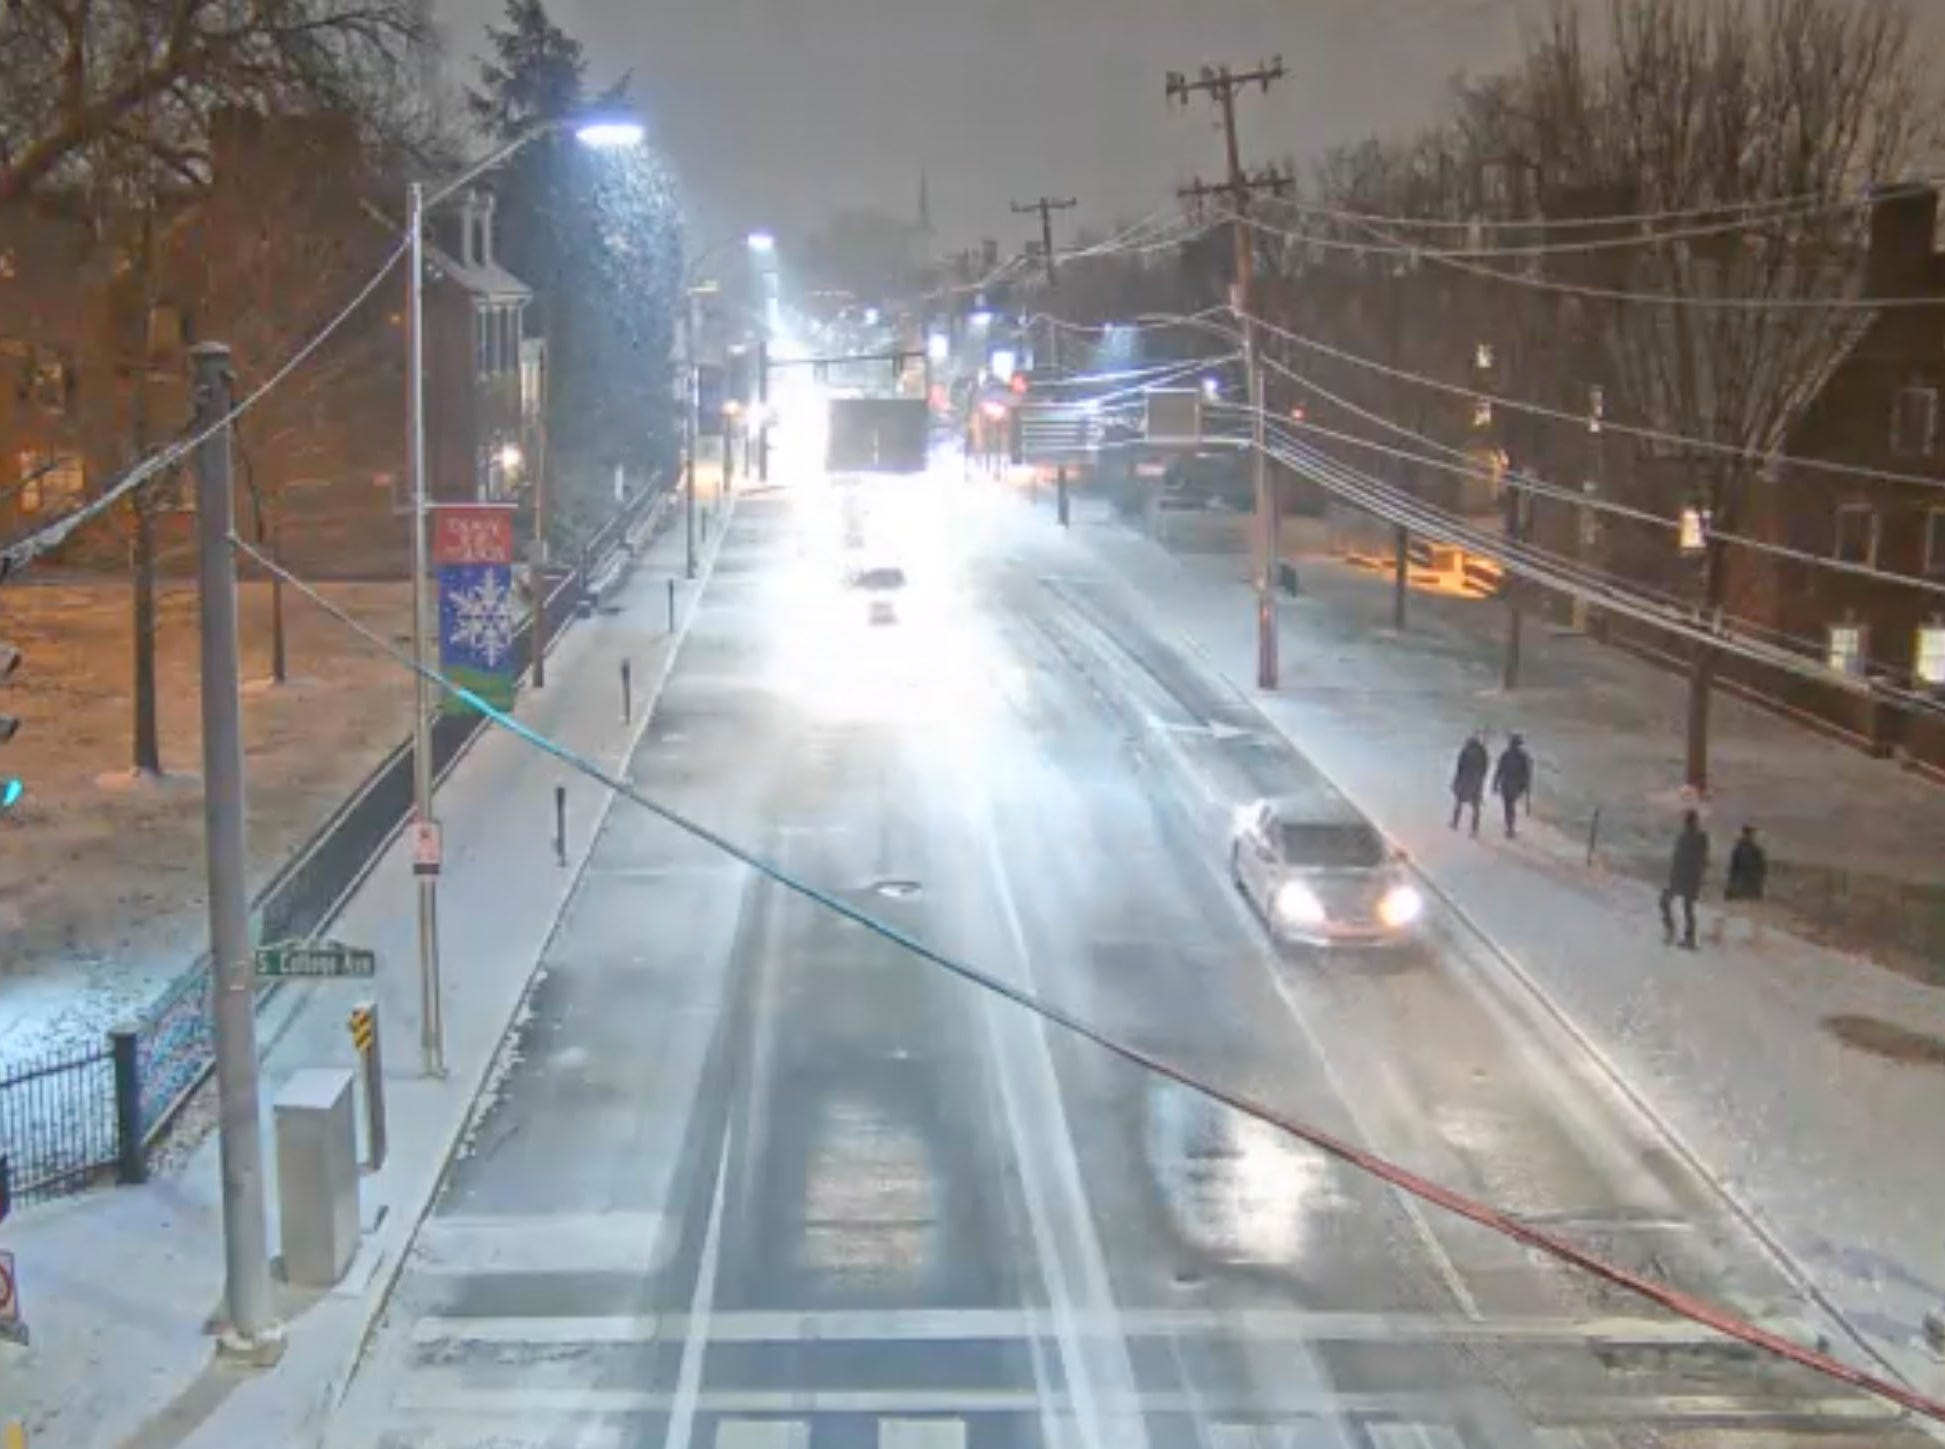 Delaware snowfall forecast upgraded: 3-6 inches of snow expected